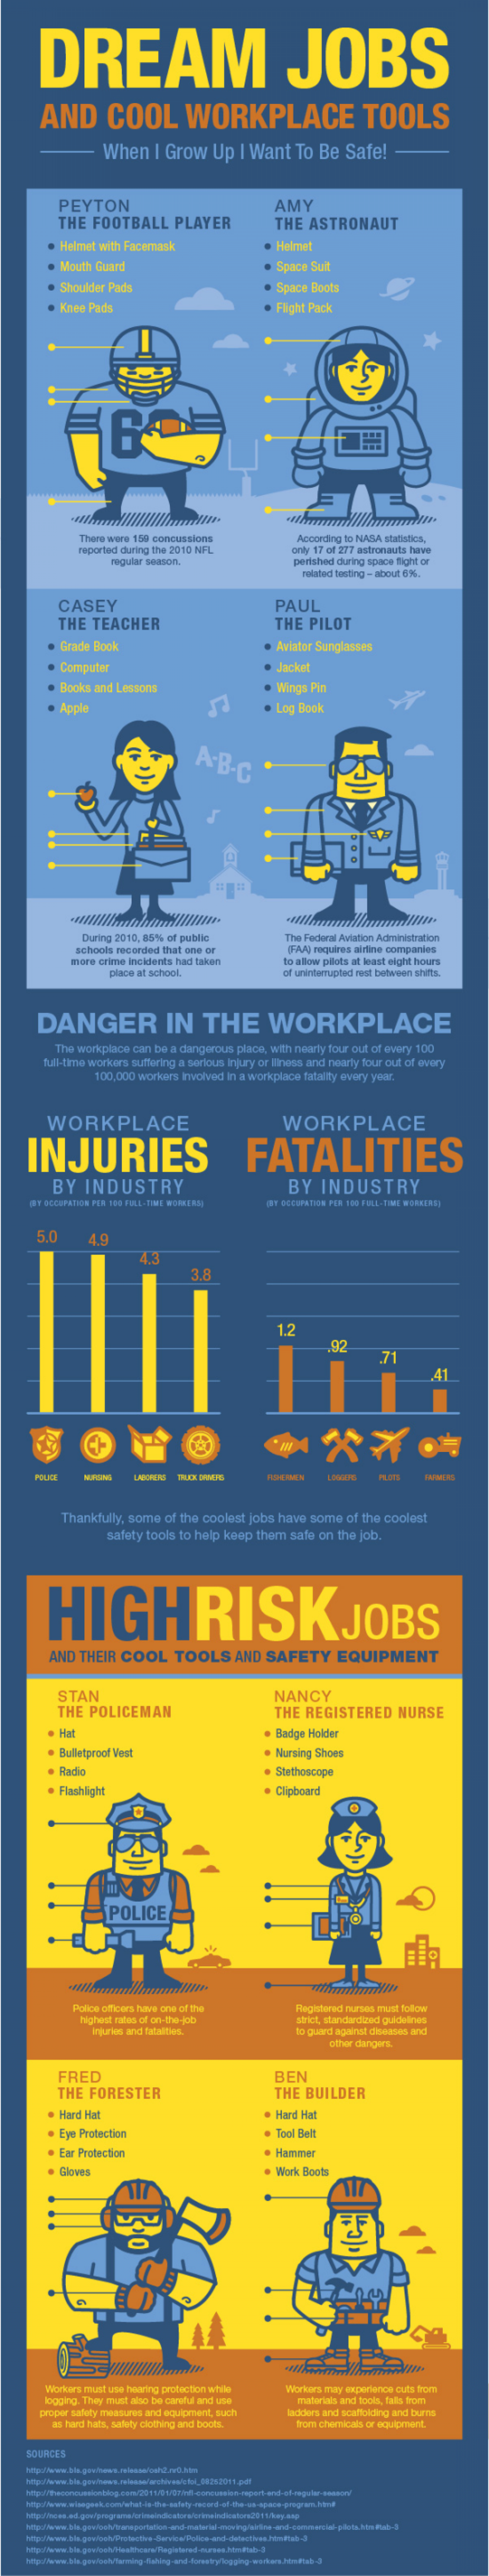 Dream Jobs and Safety Infographic